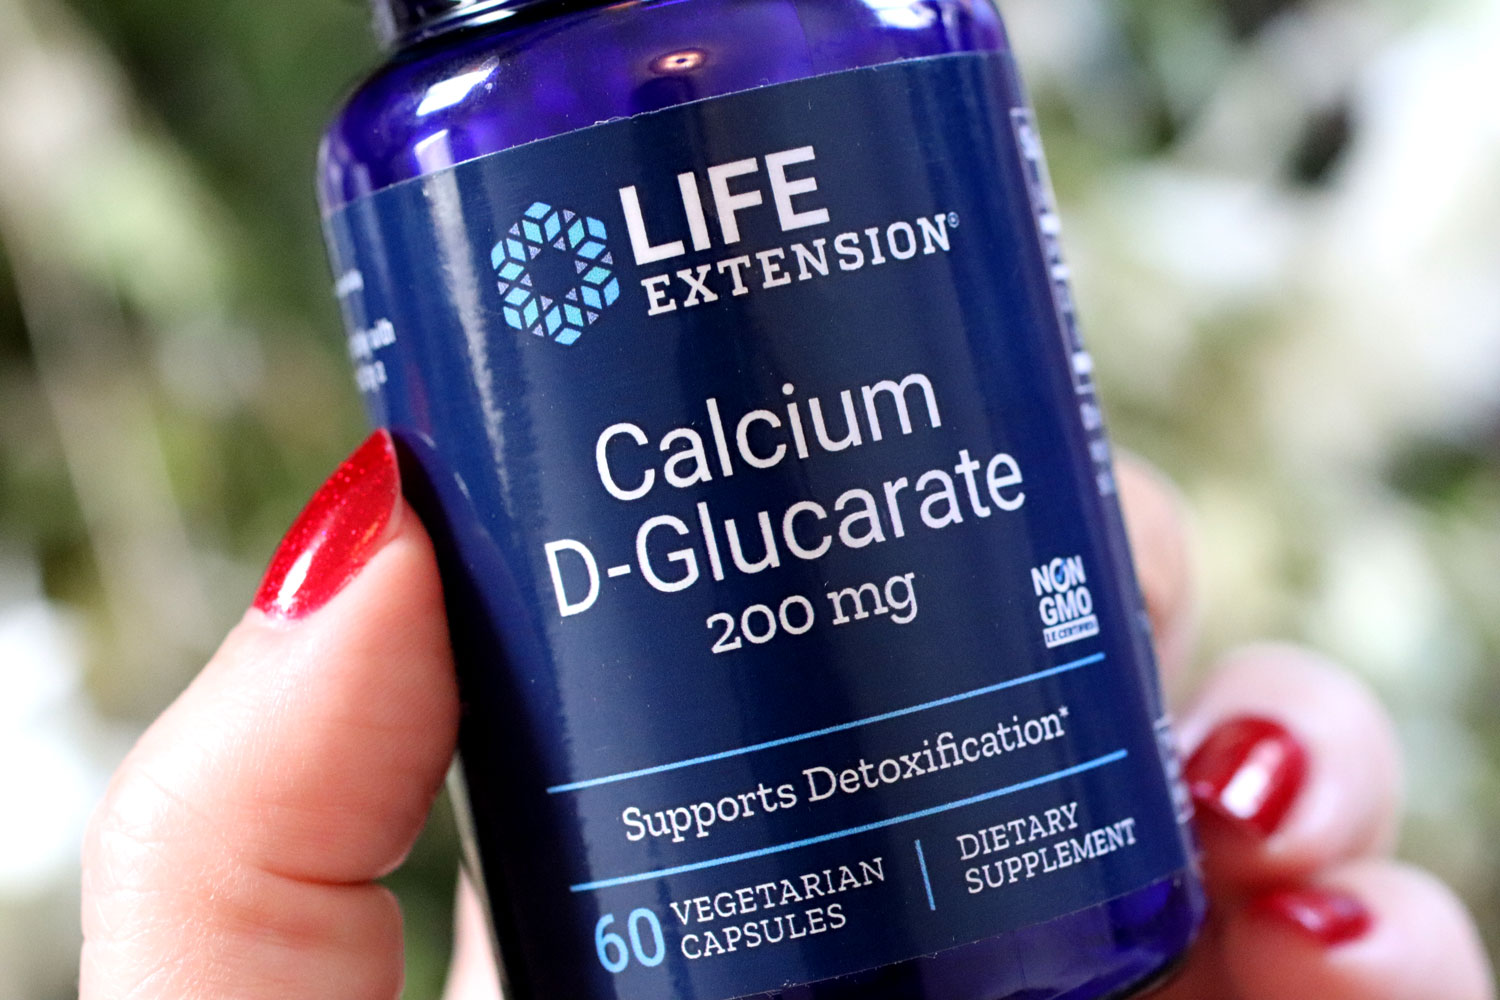 calcium d glucarate detox support from Life Extension